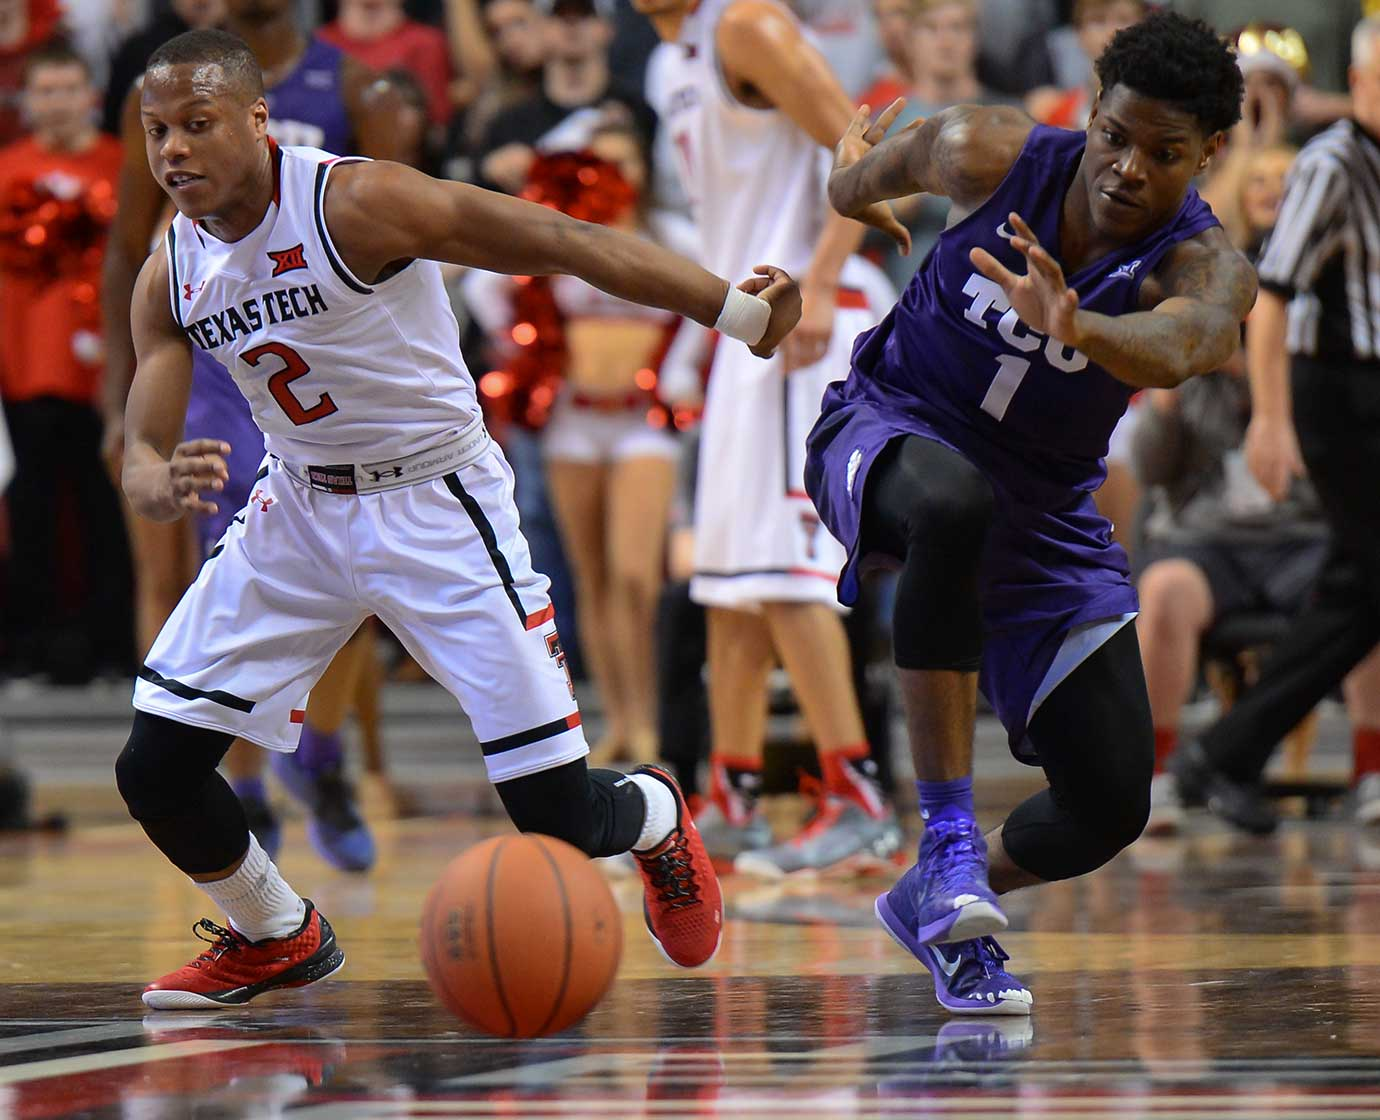 Devon Thomas of Texas Tech and Chauncey Collins of TCU try to regain their footing to get to a loose ball first.